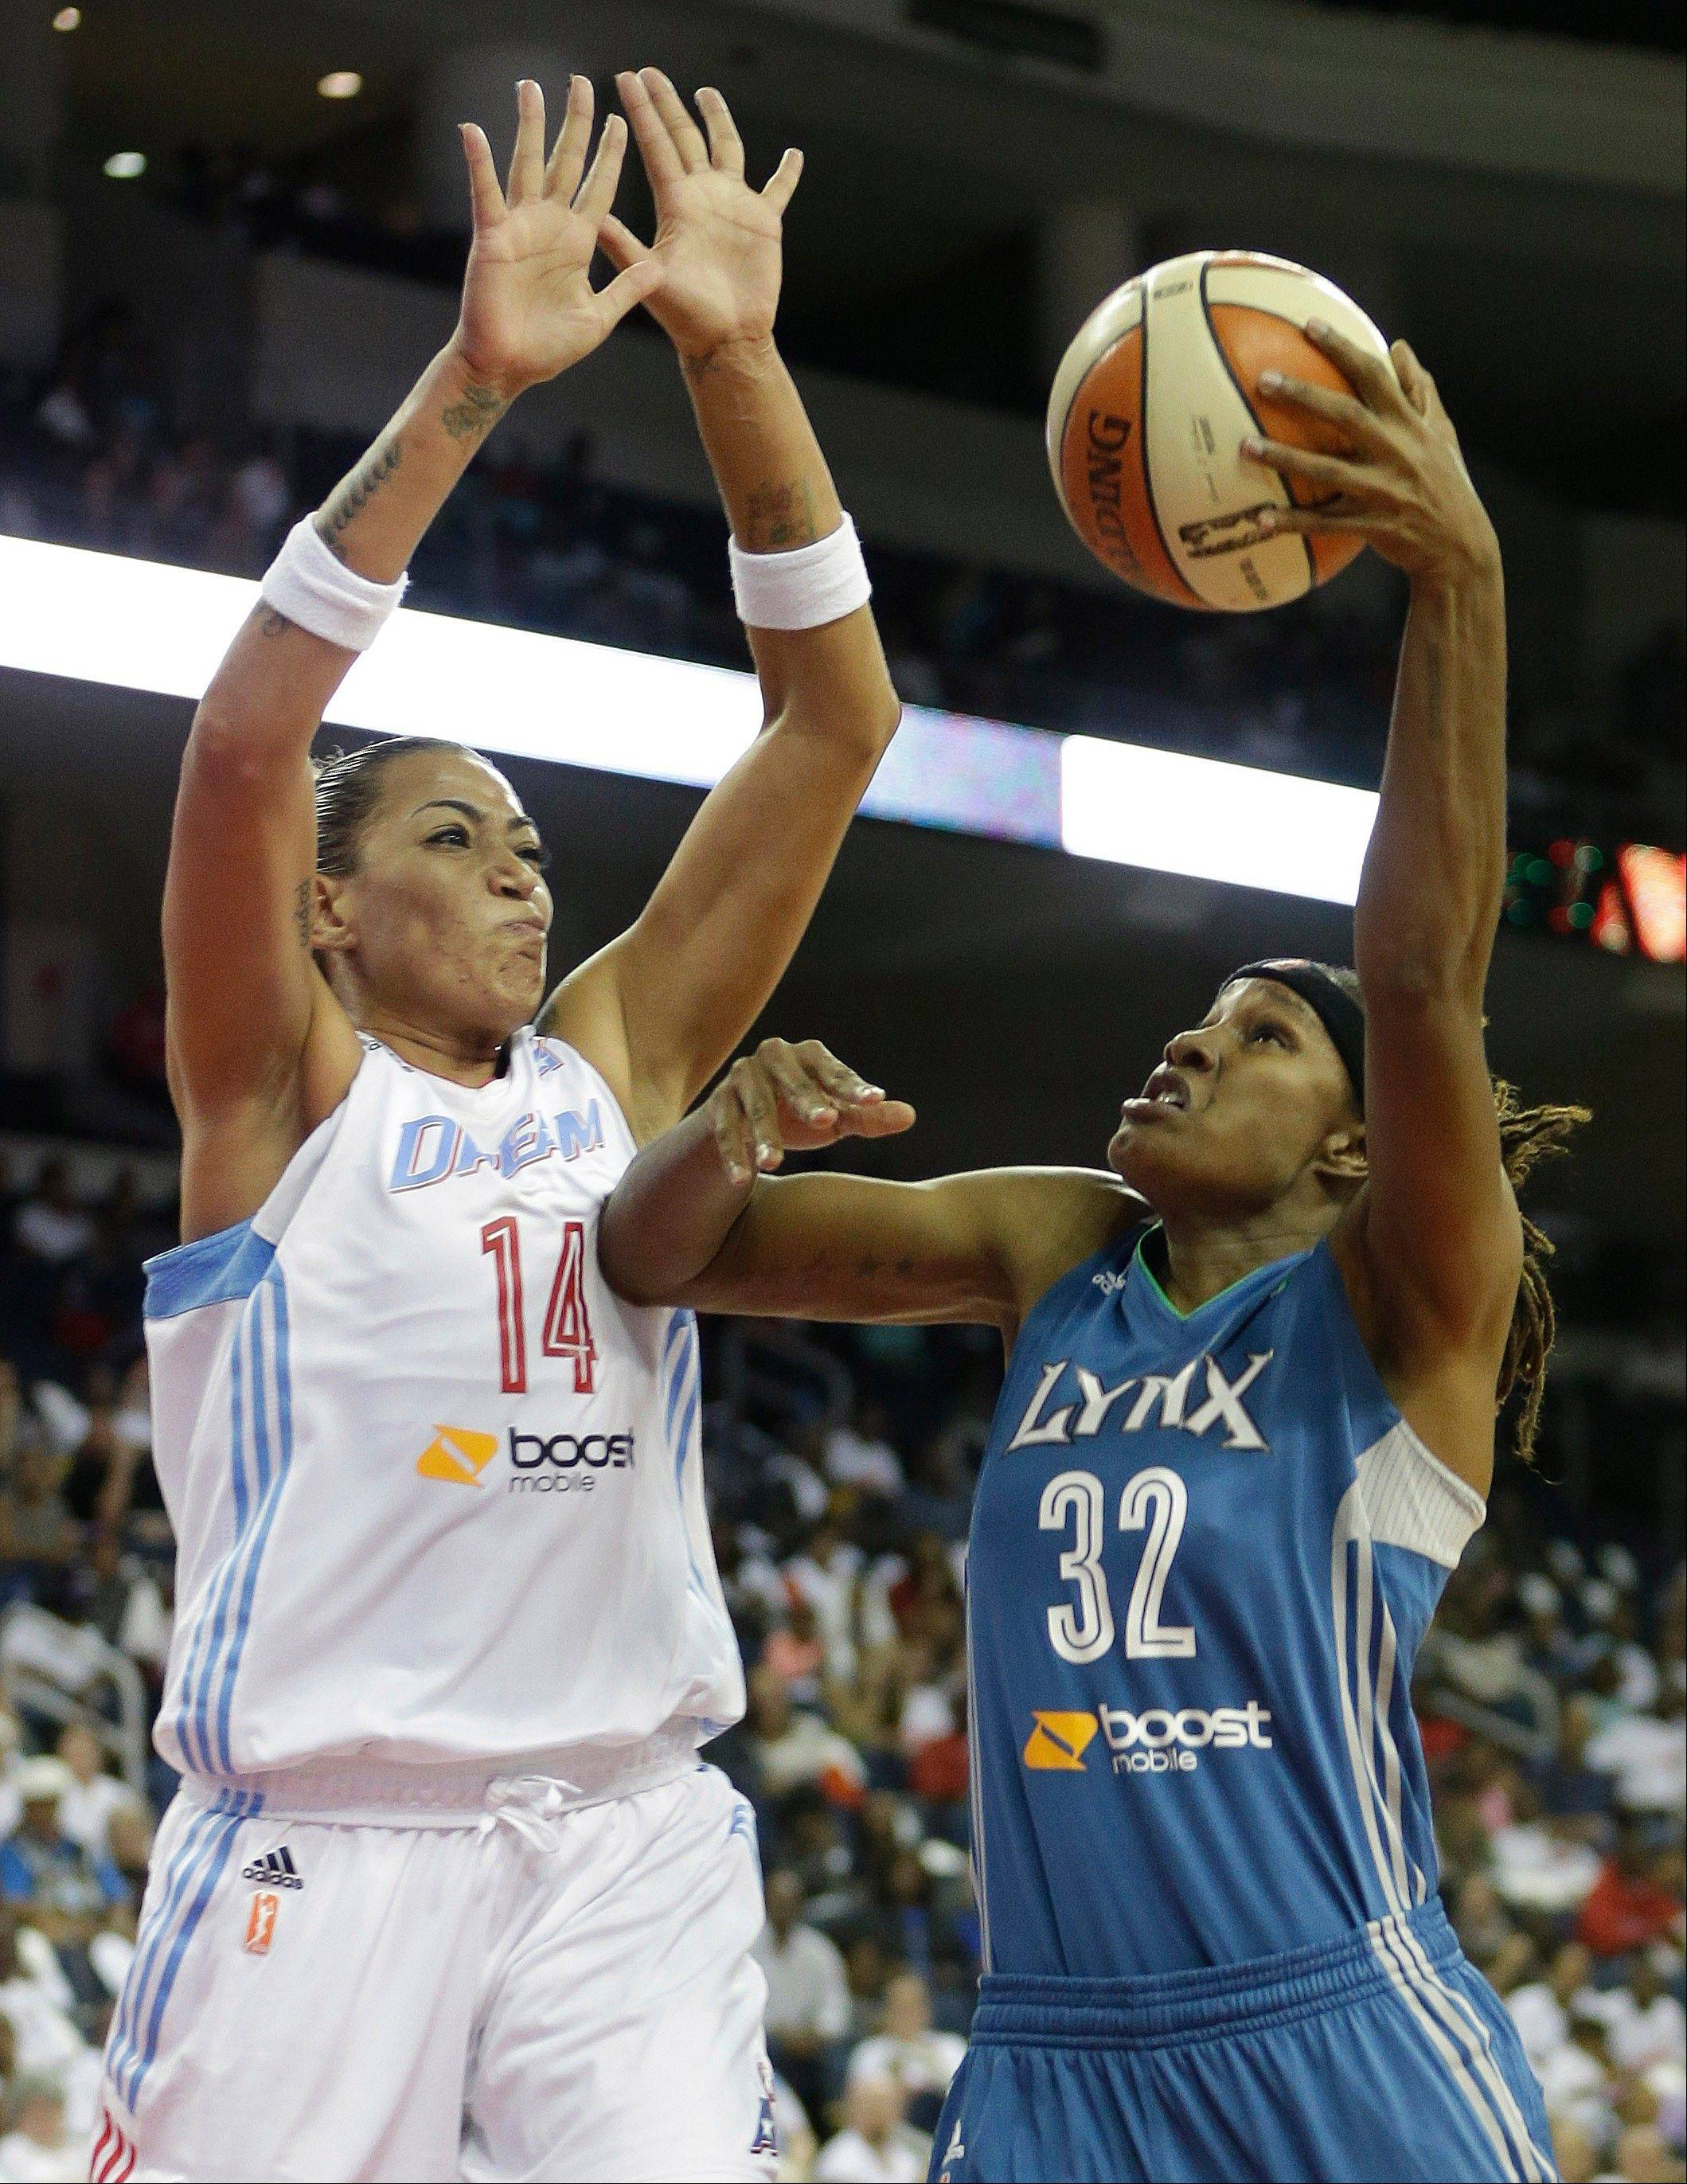 Minnesota's Rebekkah Brunson shoots as Atlanta's Erika de Souza defends during Game 3 of the WNBA Finals Thursday in Duluth, Ga.